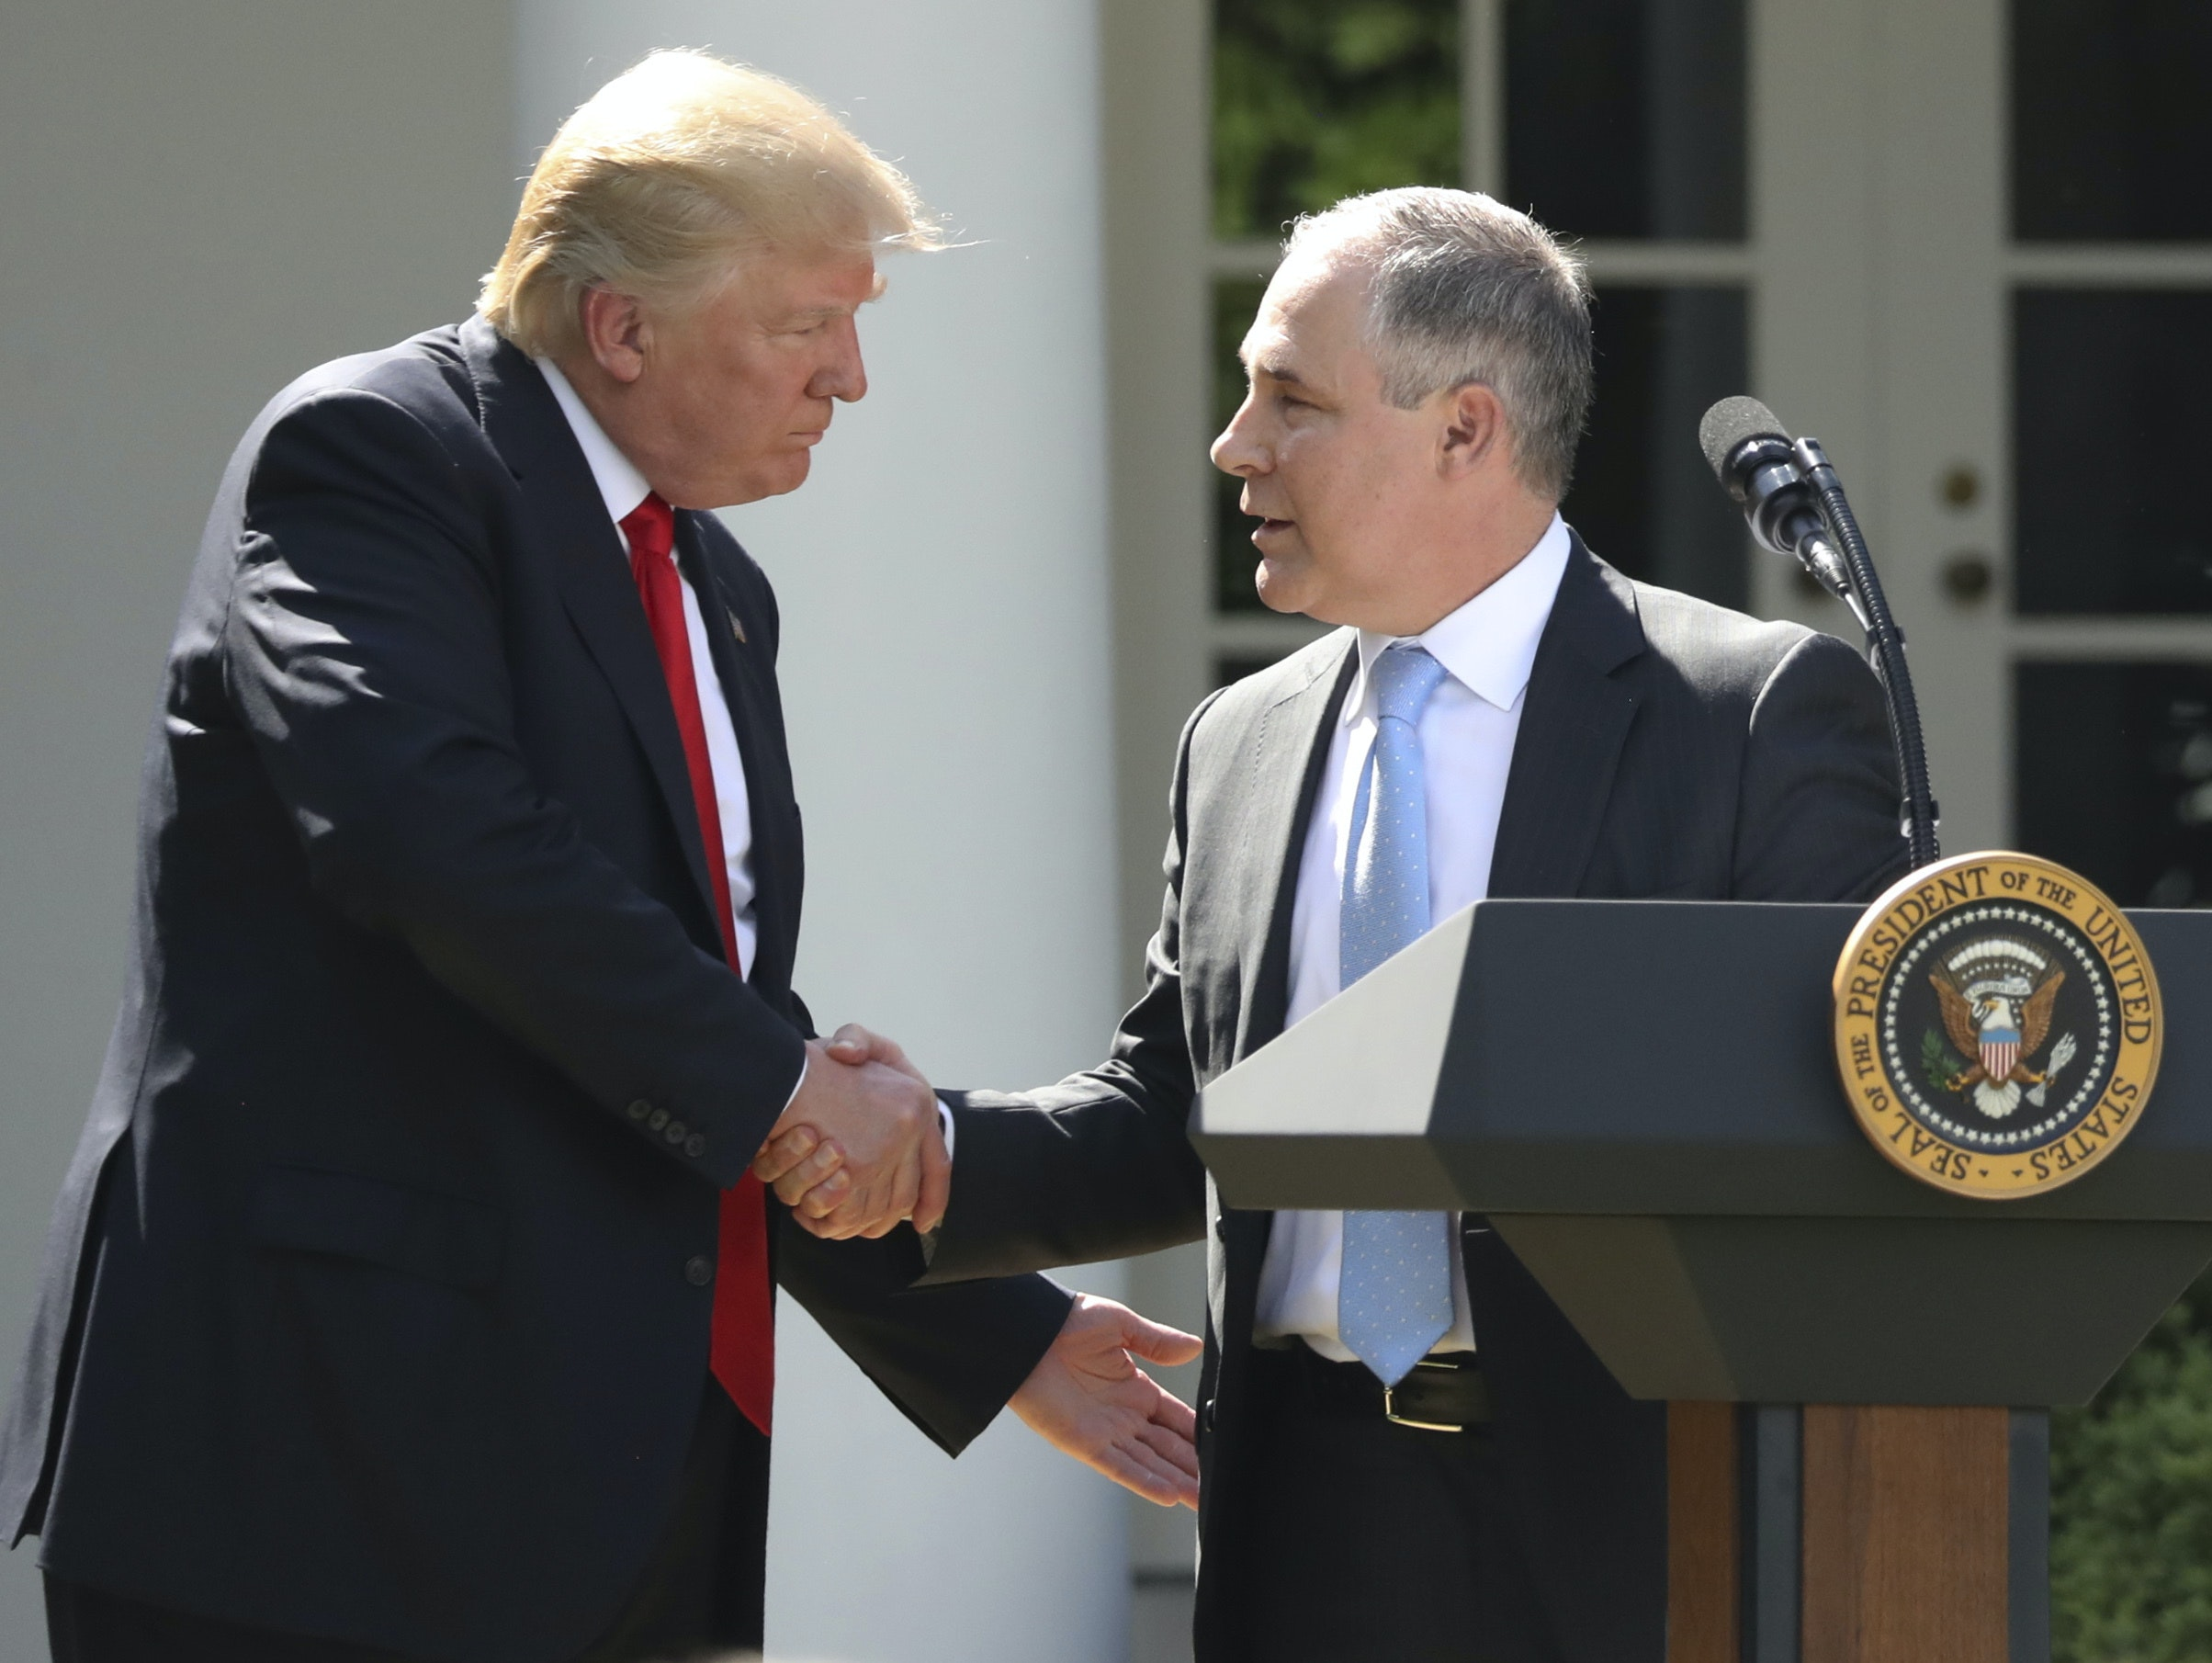 President Trump with EPA Administrator Scott Pruitt.